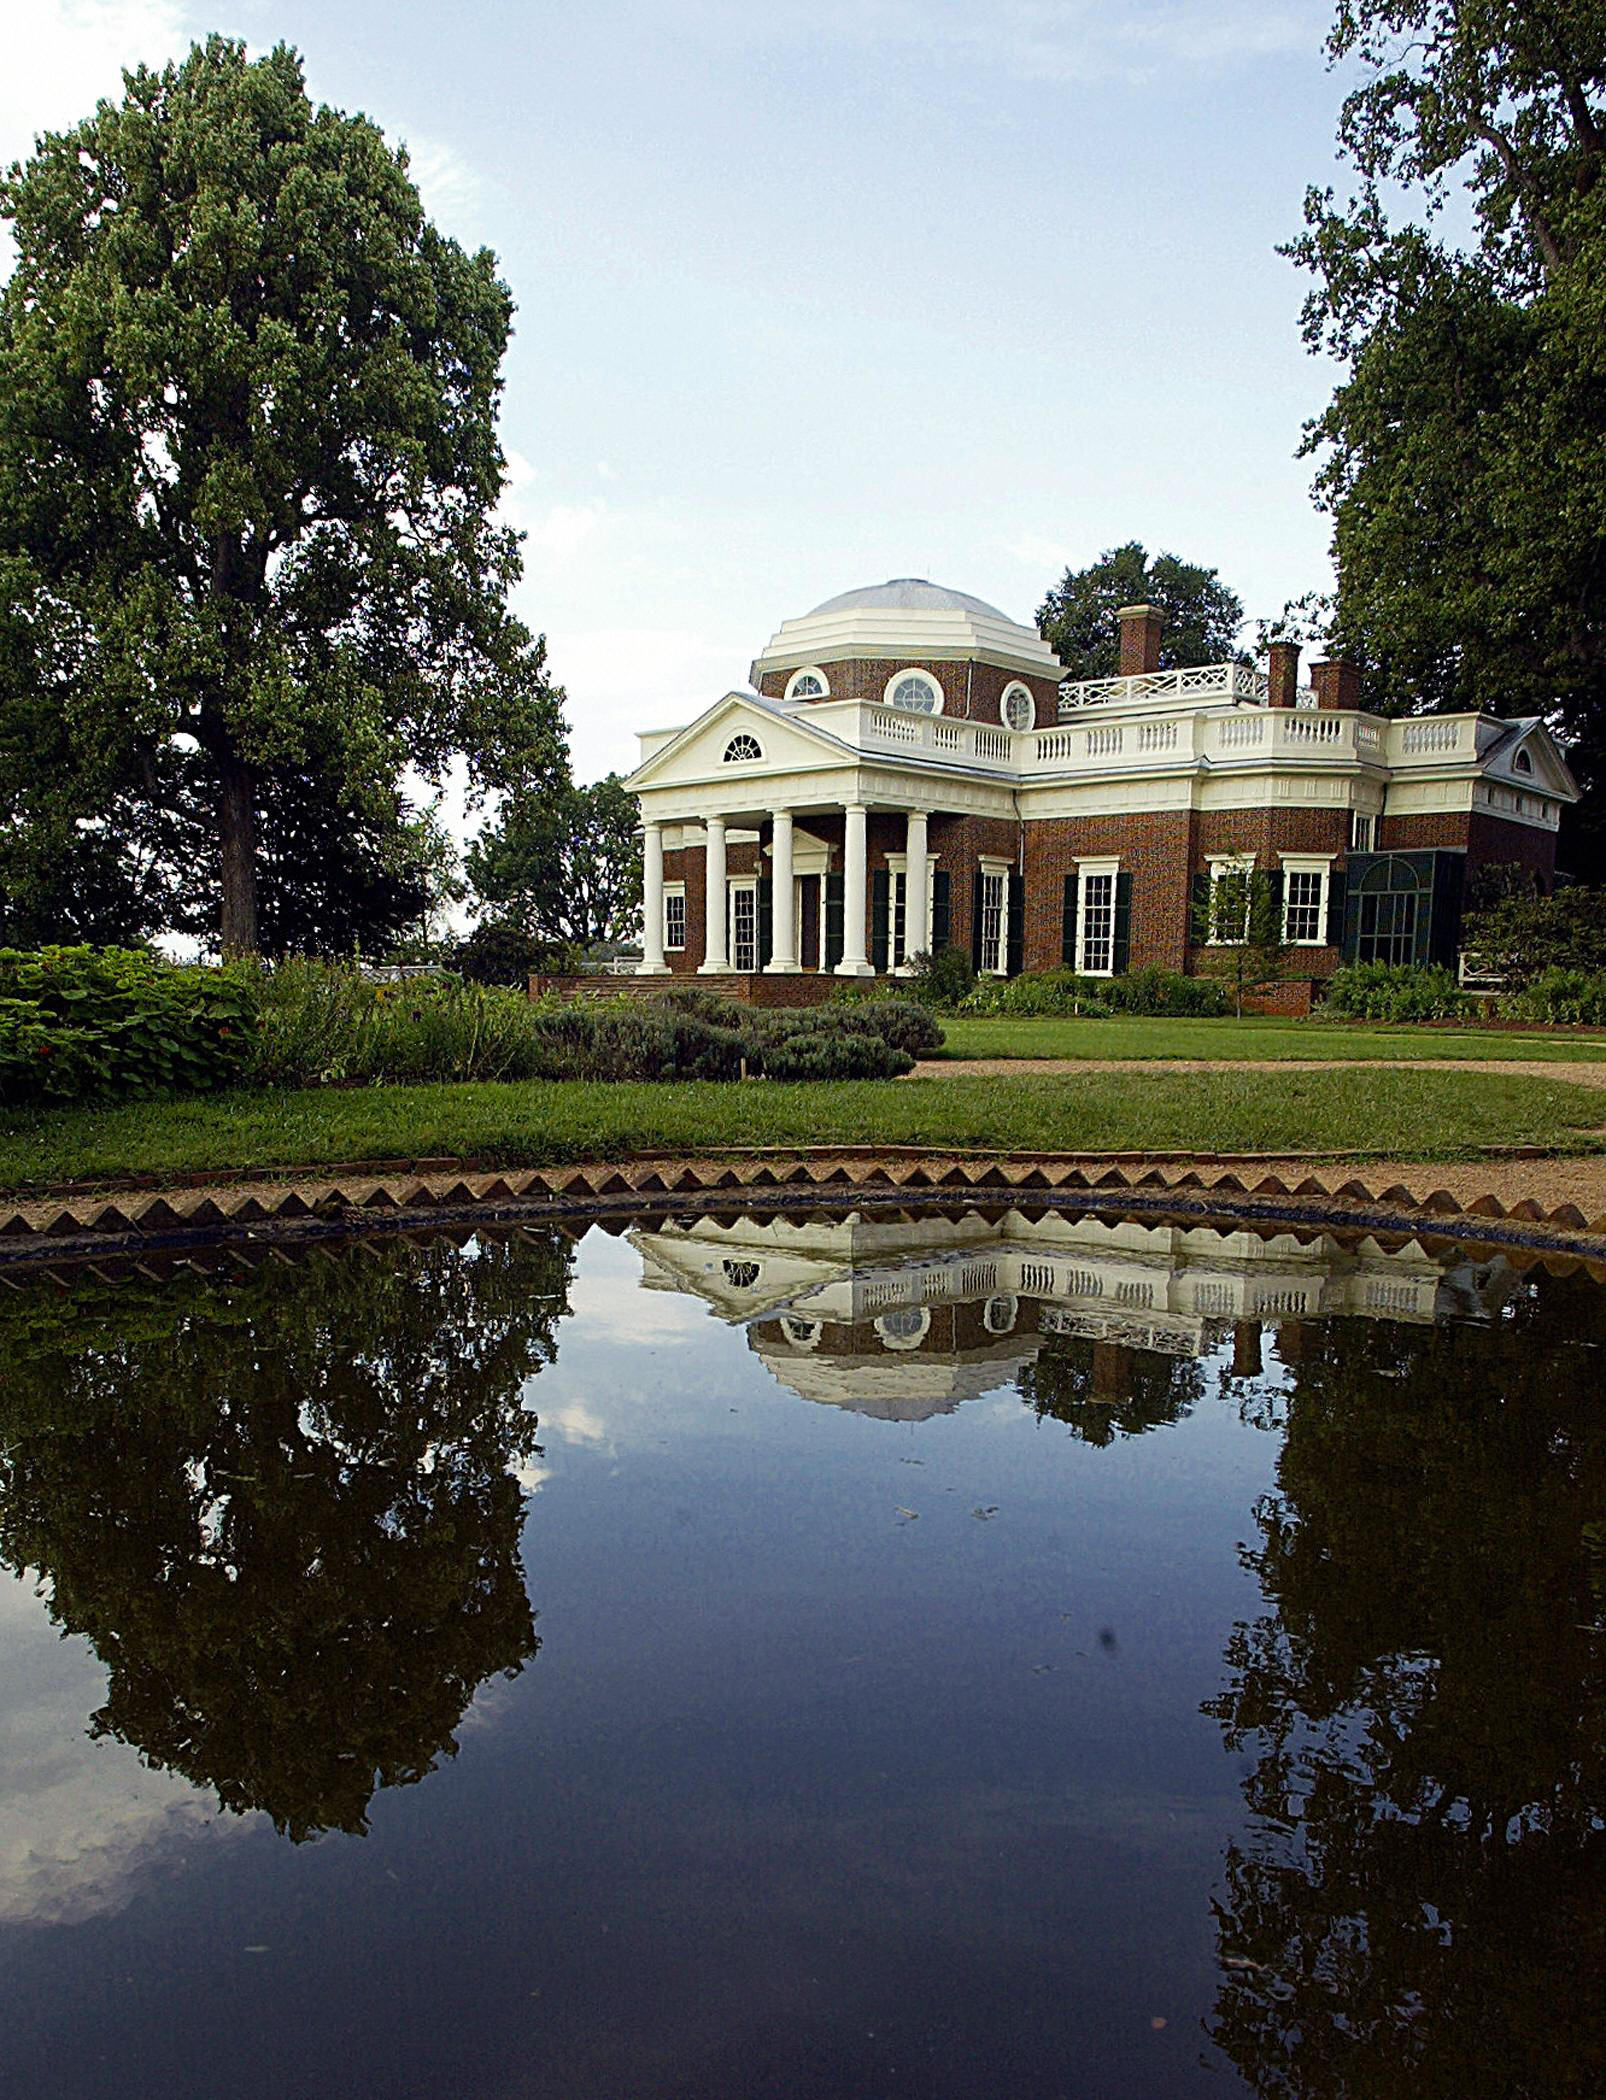 A pond used to store live fish to eat reflects the home of third US President Thomas Jefferson, author of the Declaration of Independence, 12 July, 2003, in Monticello, Virginia. (Paul J. Richards/AFP via Getty Images)